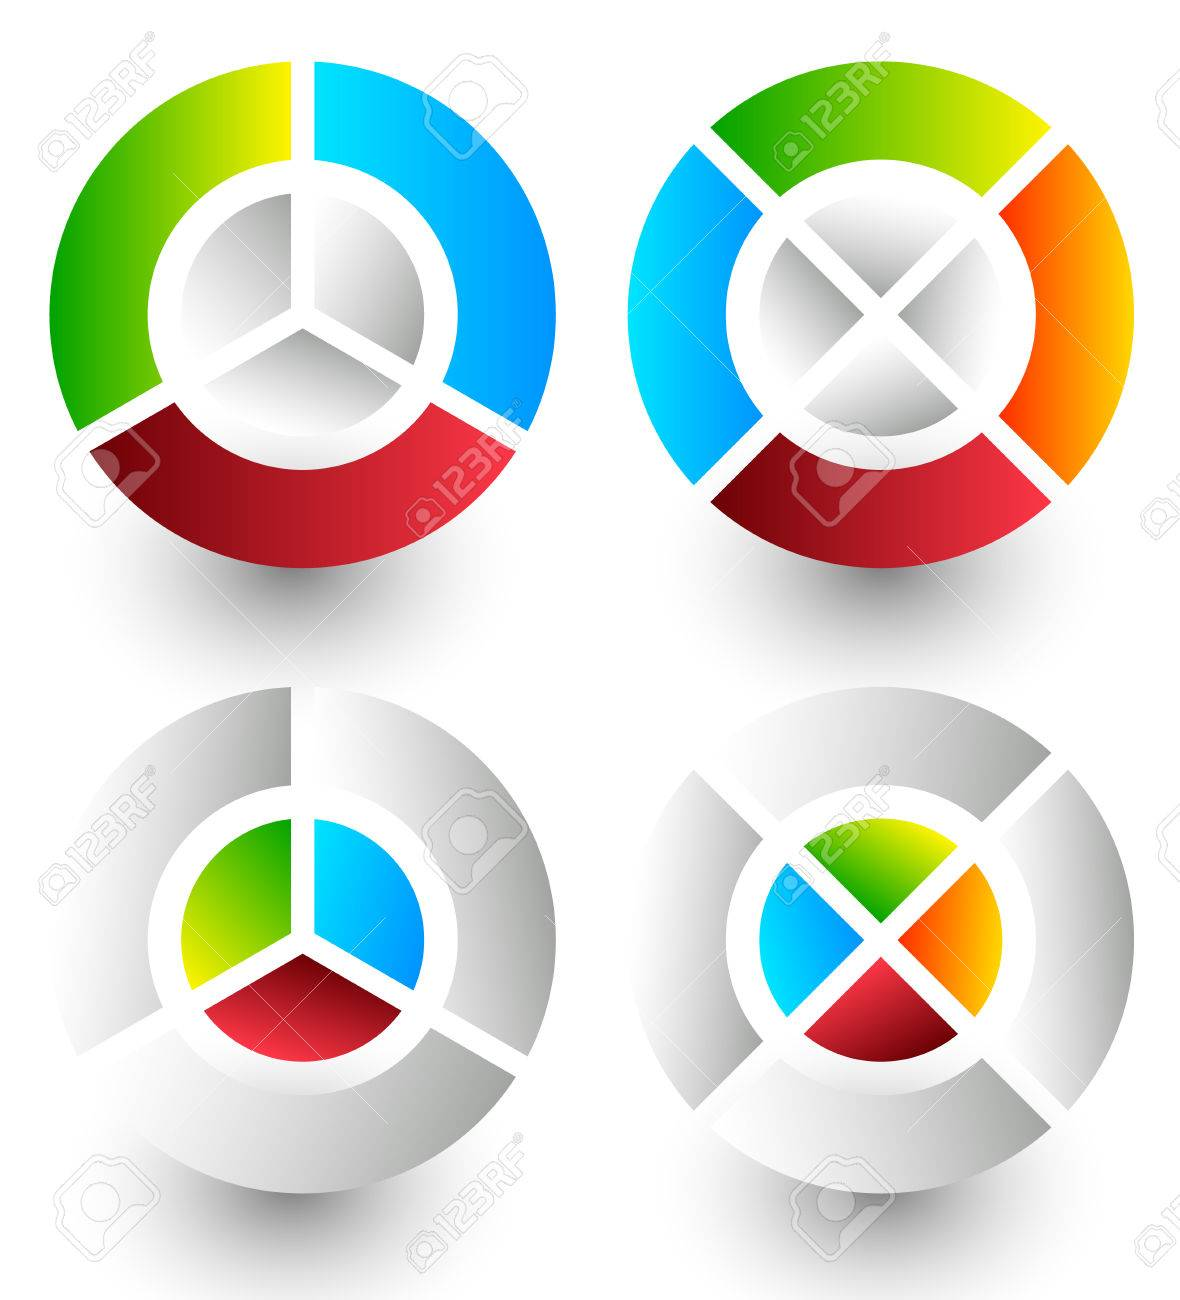 Pie chart pie graph icons analytics diagnostics infographic pie chart pie graph icons analytics diagnostics infographic icons colorful segmented nvjuhfo Images